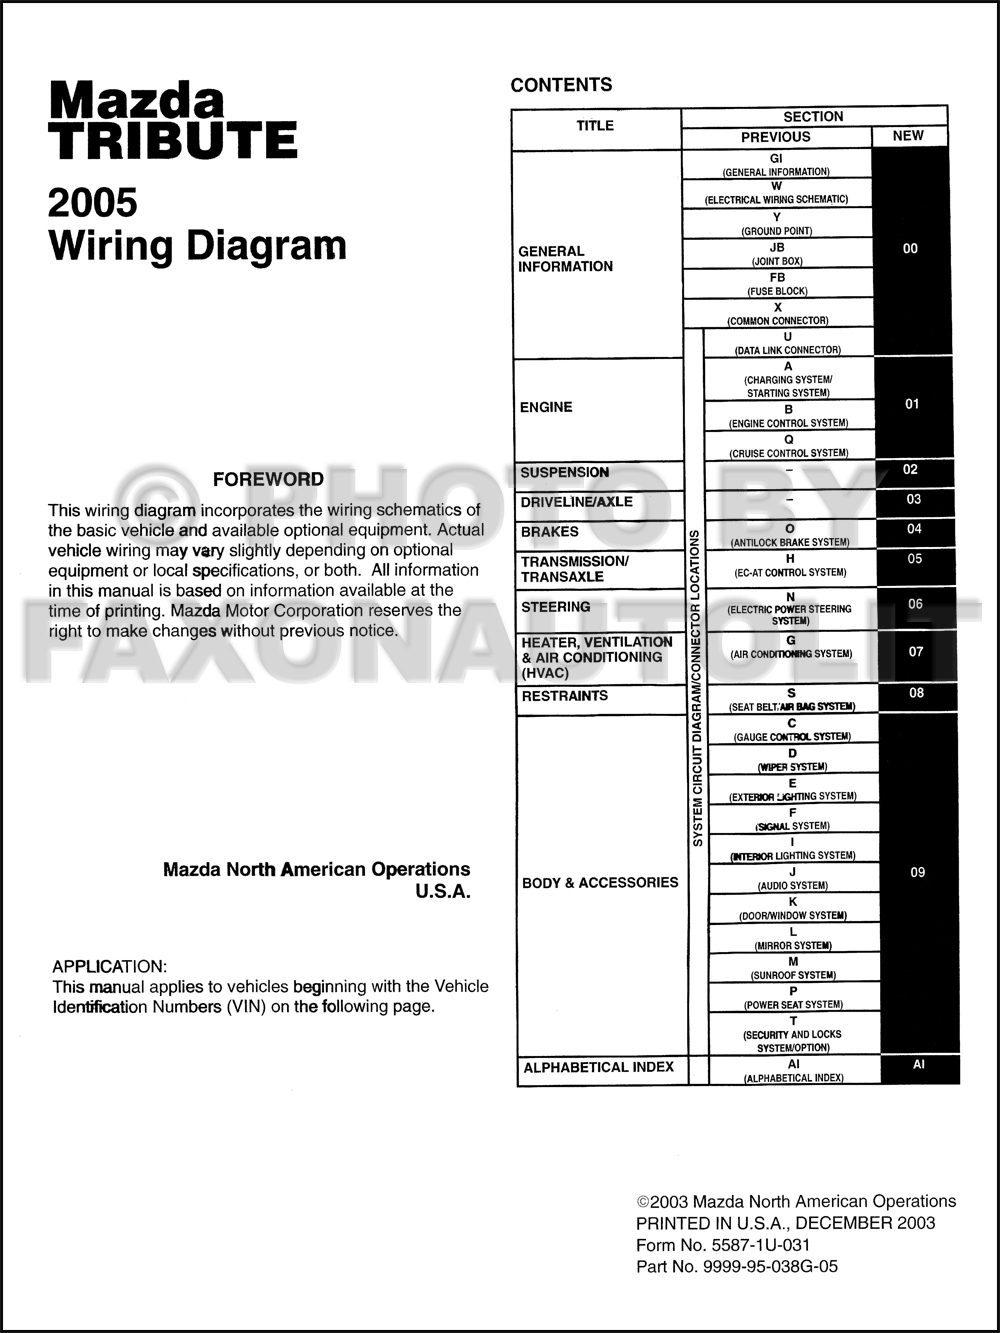 2005 Mazda Tribute Wiring Diagram Schematics Diagrams Download Online Circuit